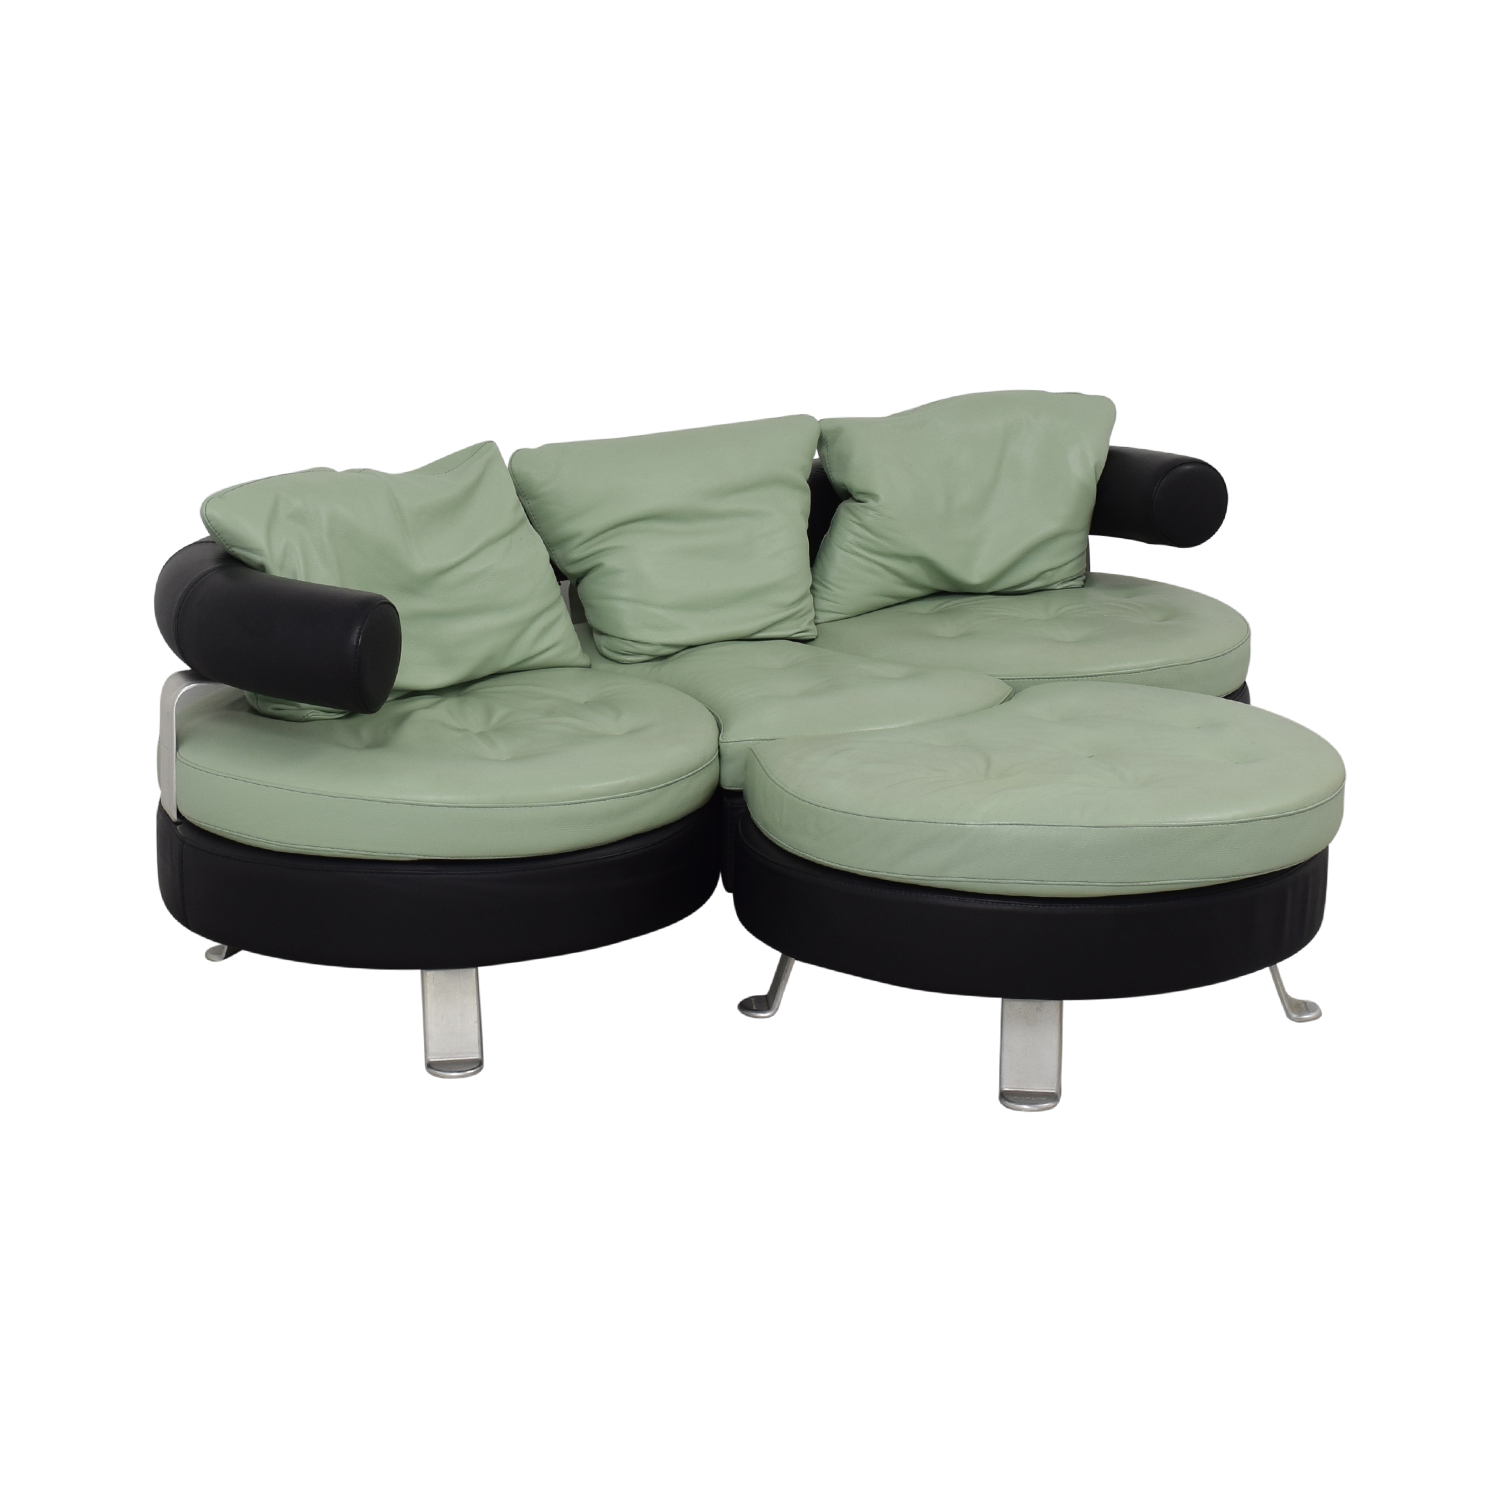 Formenti Formenti Swiveling Sofa with Matching Ottoman black & teal